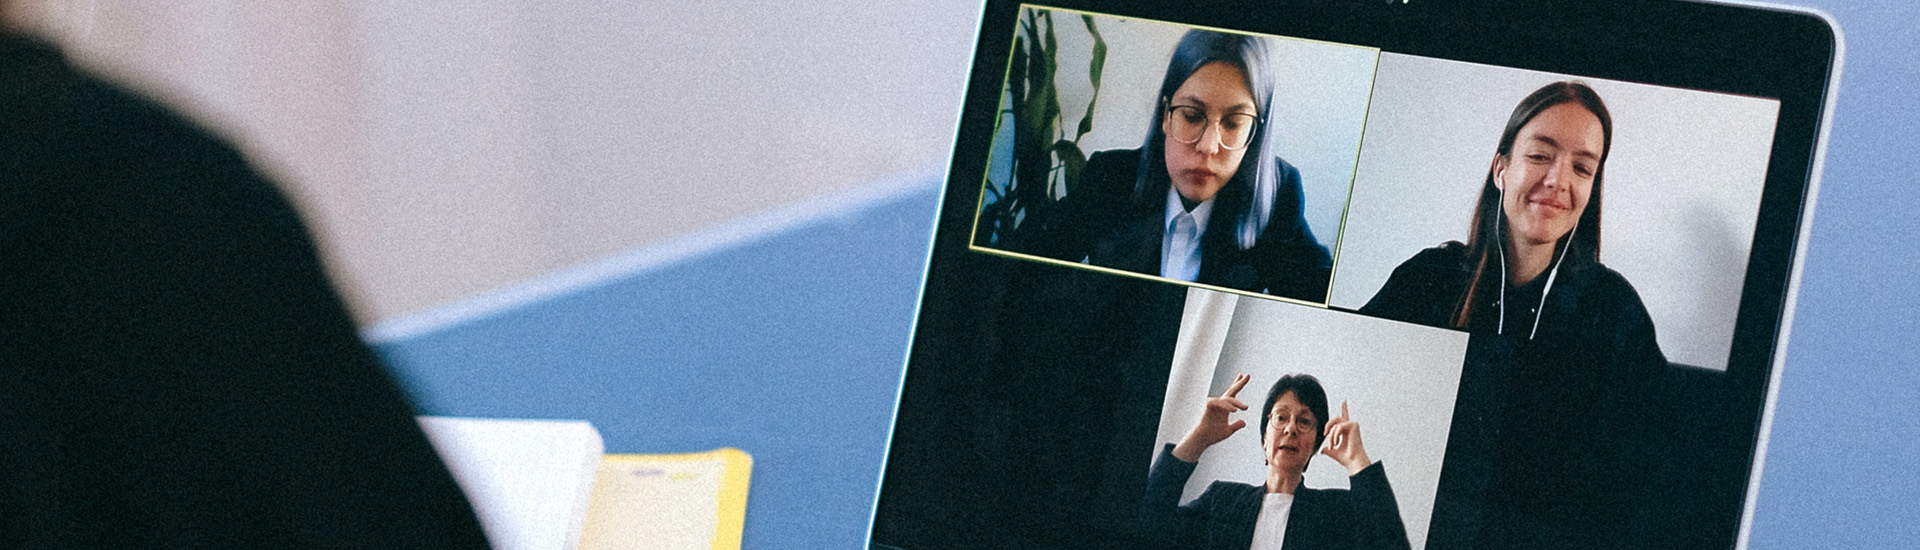 conference-call-video-chat